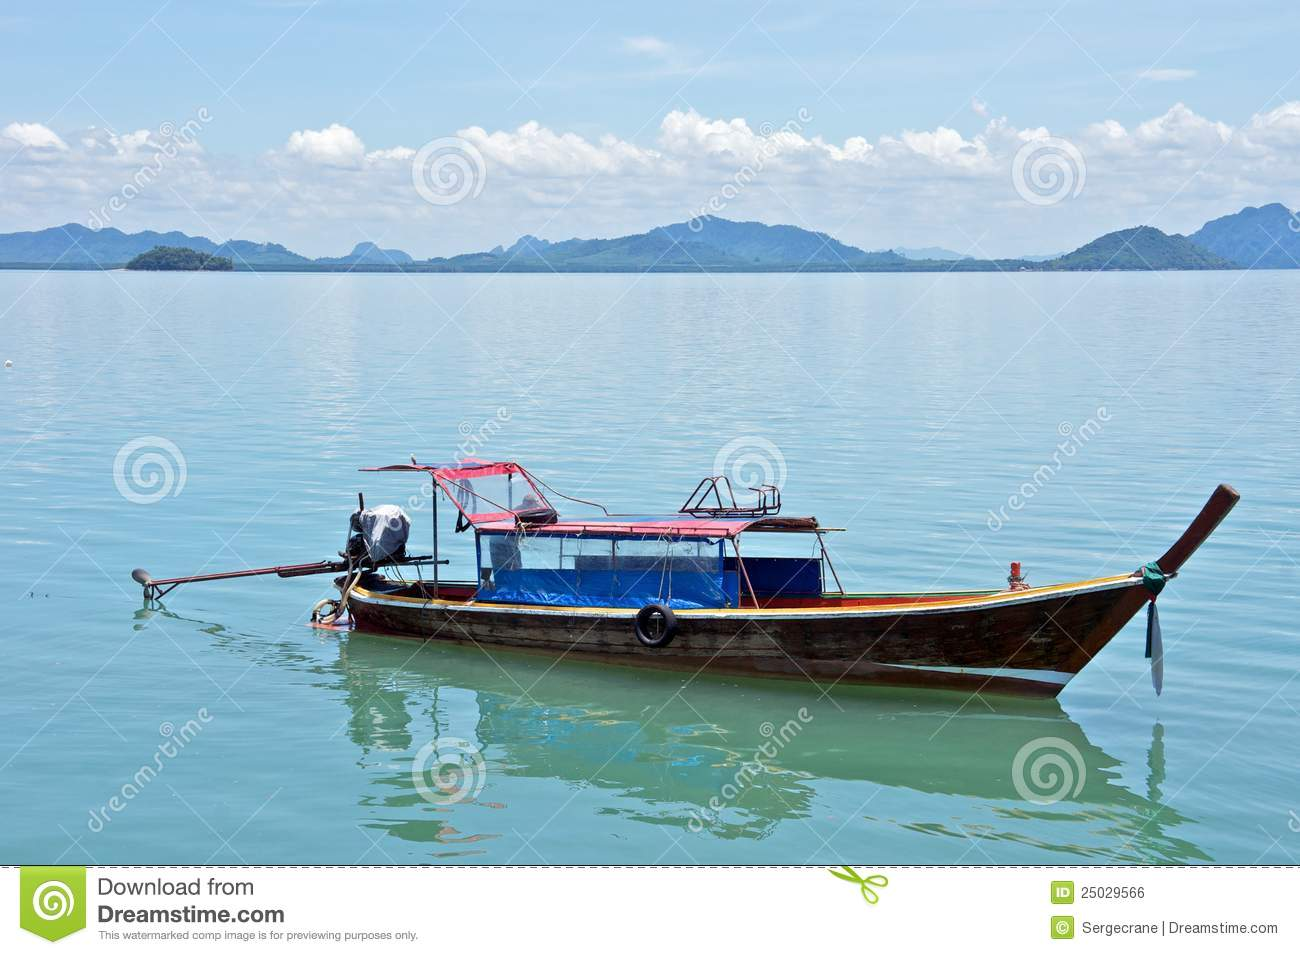 Wooden Fishing Boat Royalty Free Stock Image - Image: 25029566